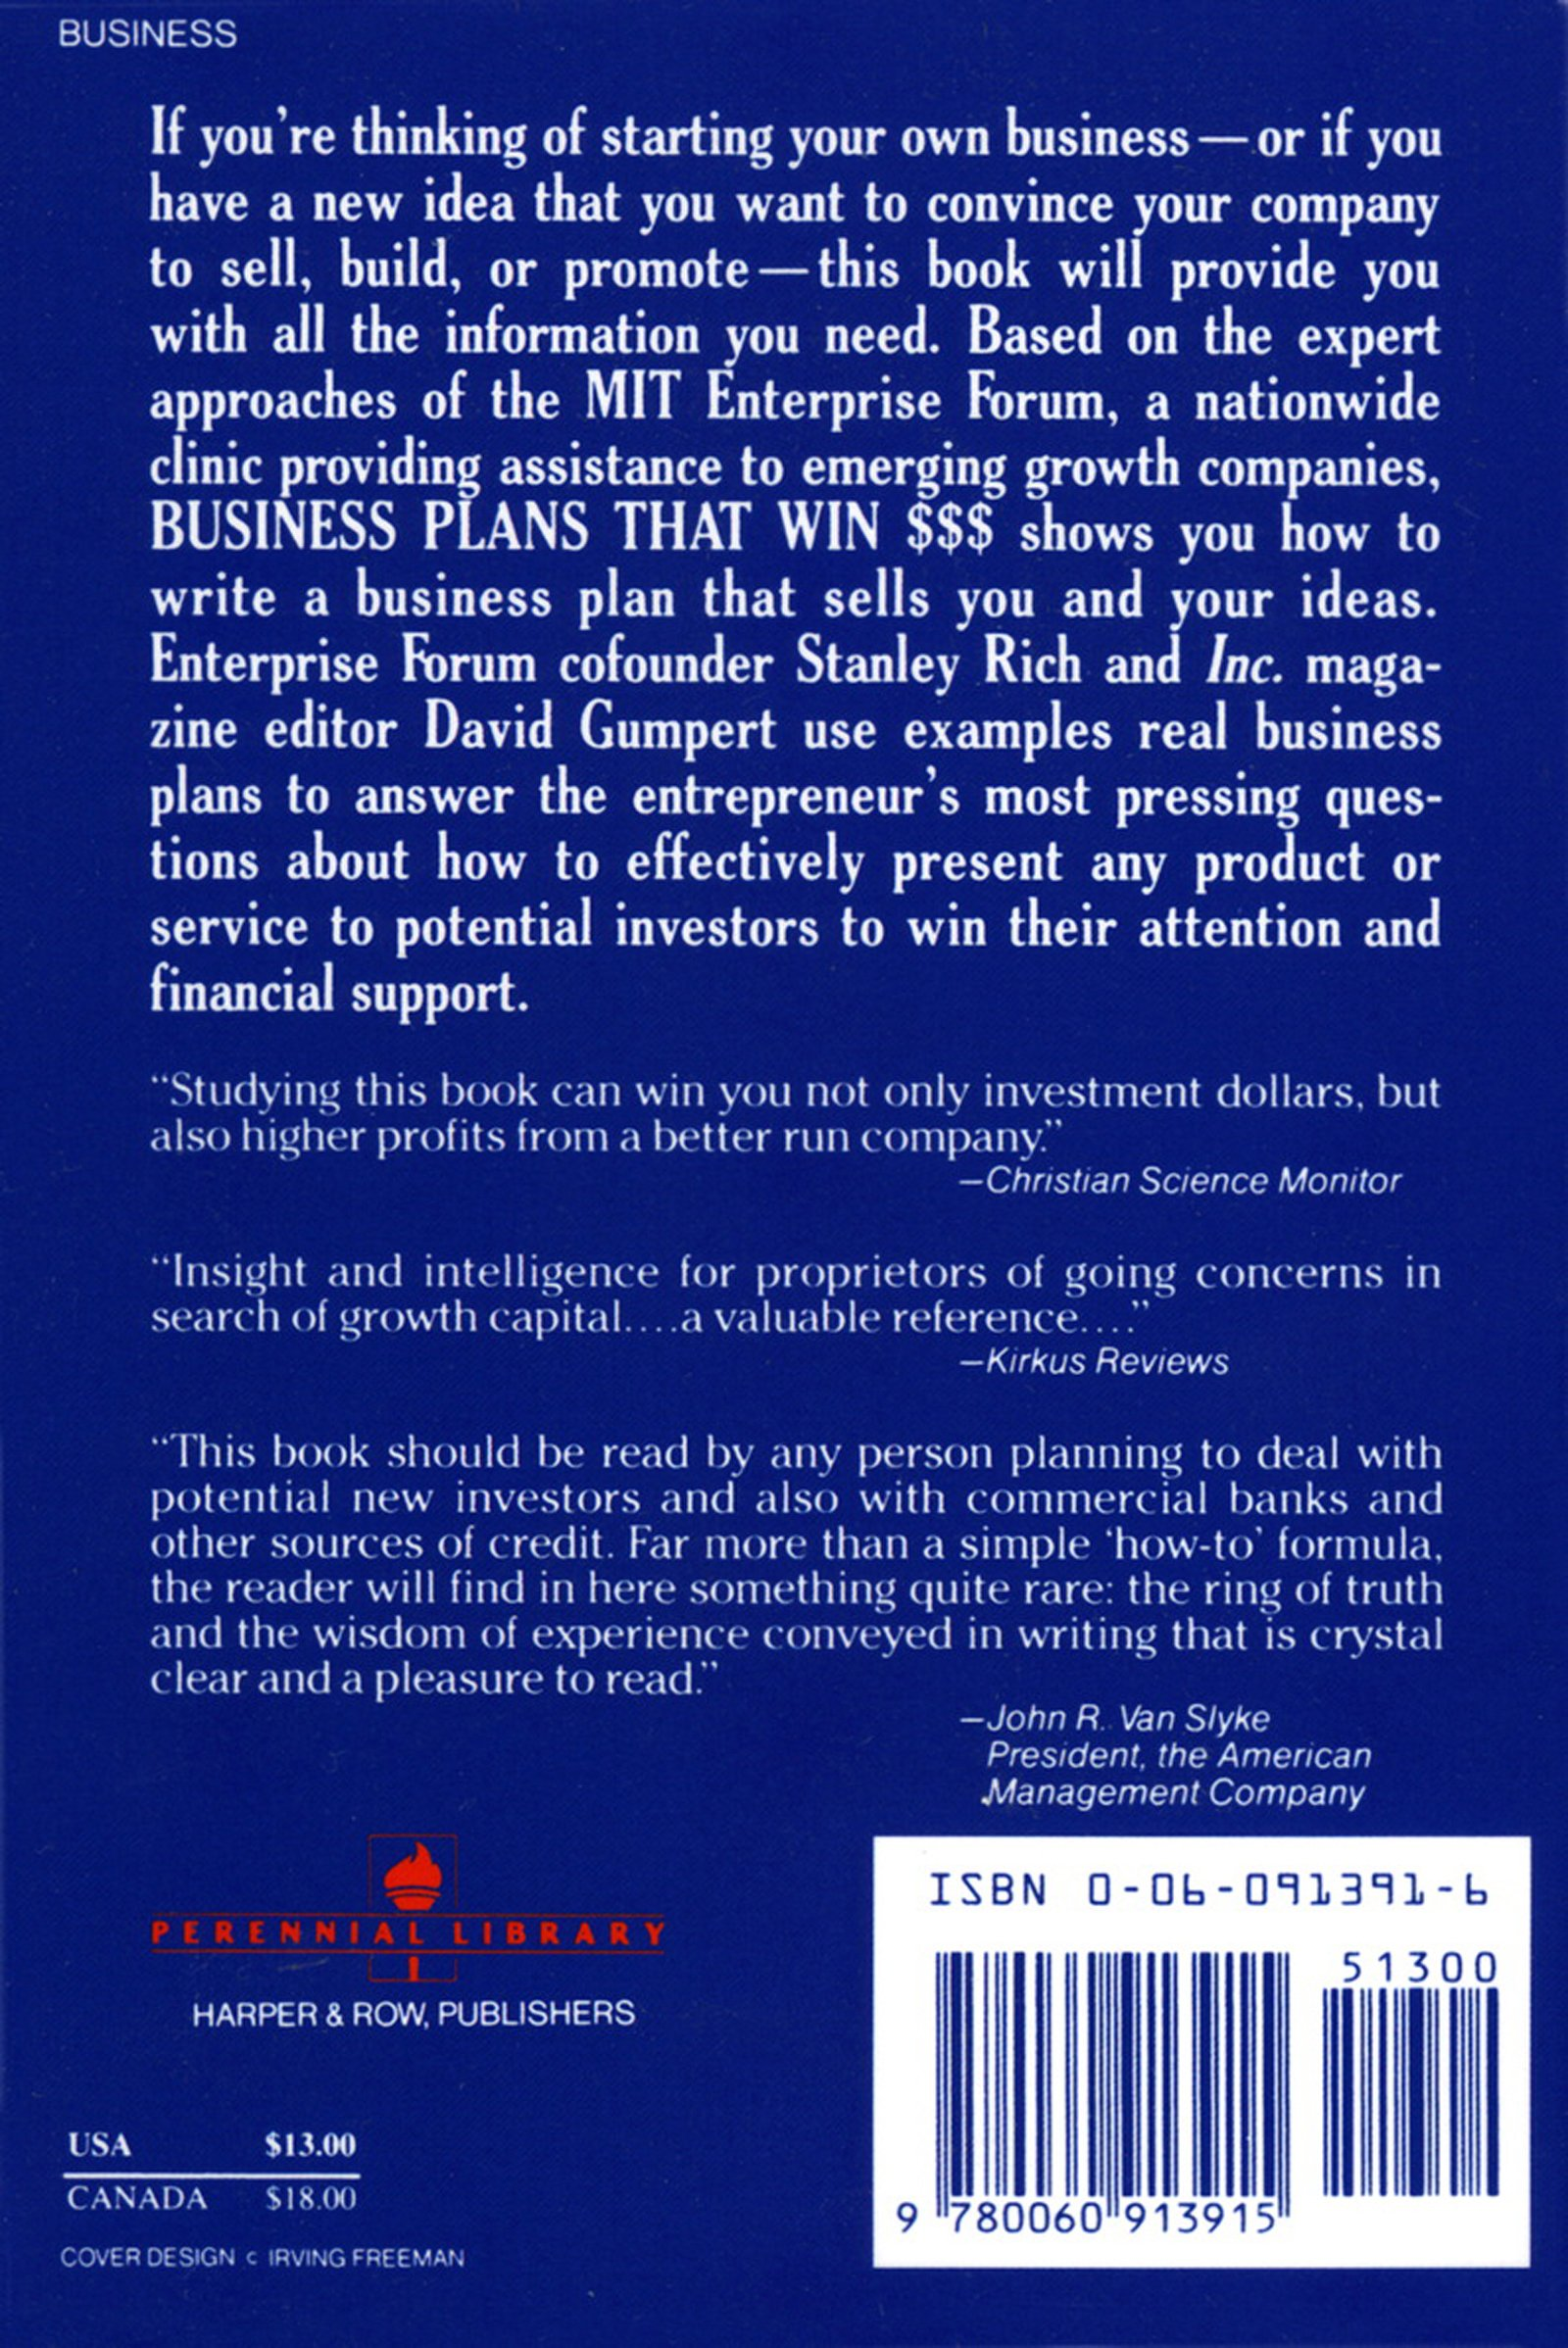 how to write a winning business plan by stanley r. rich and david e. gumpert